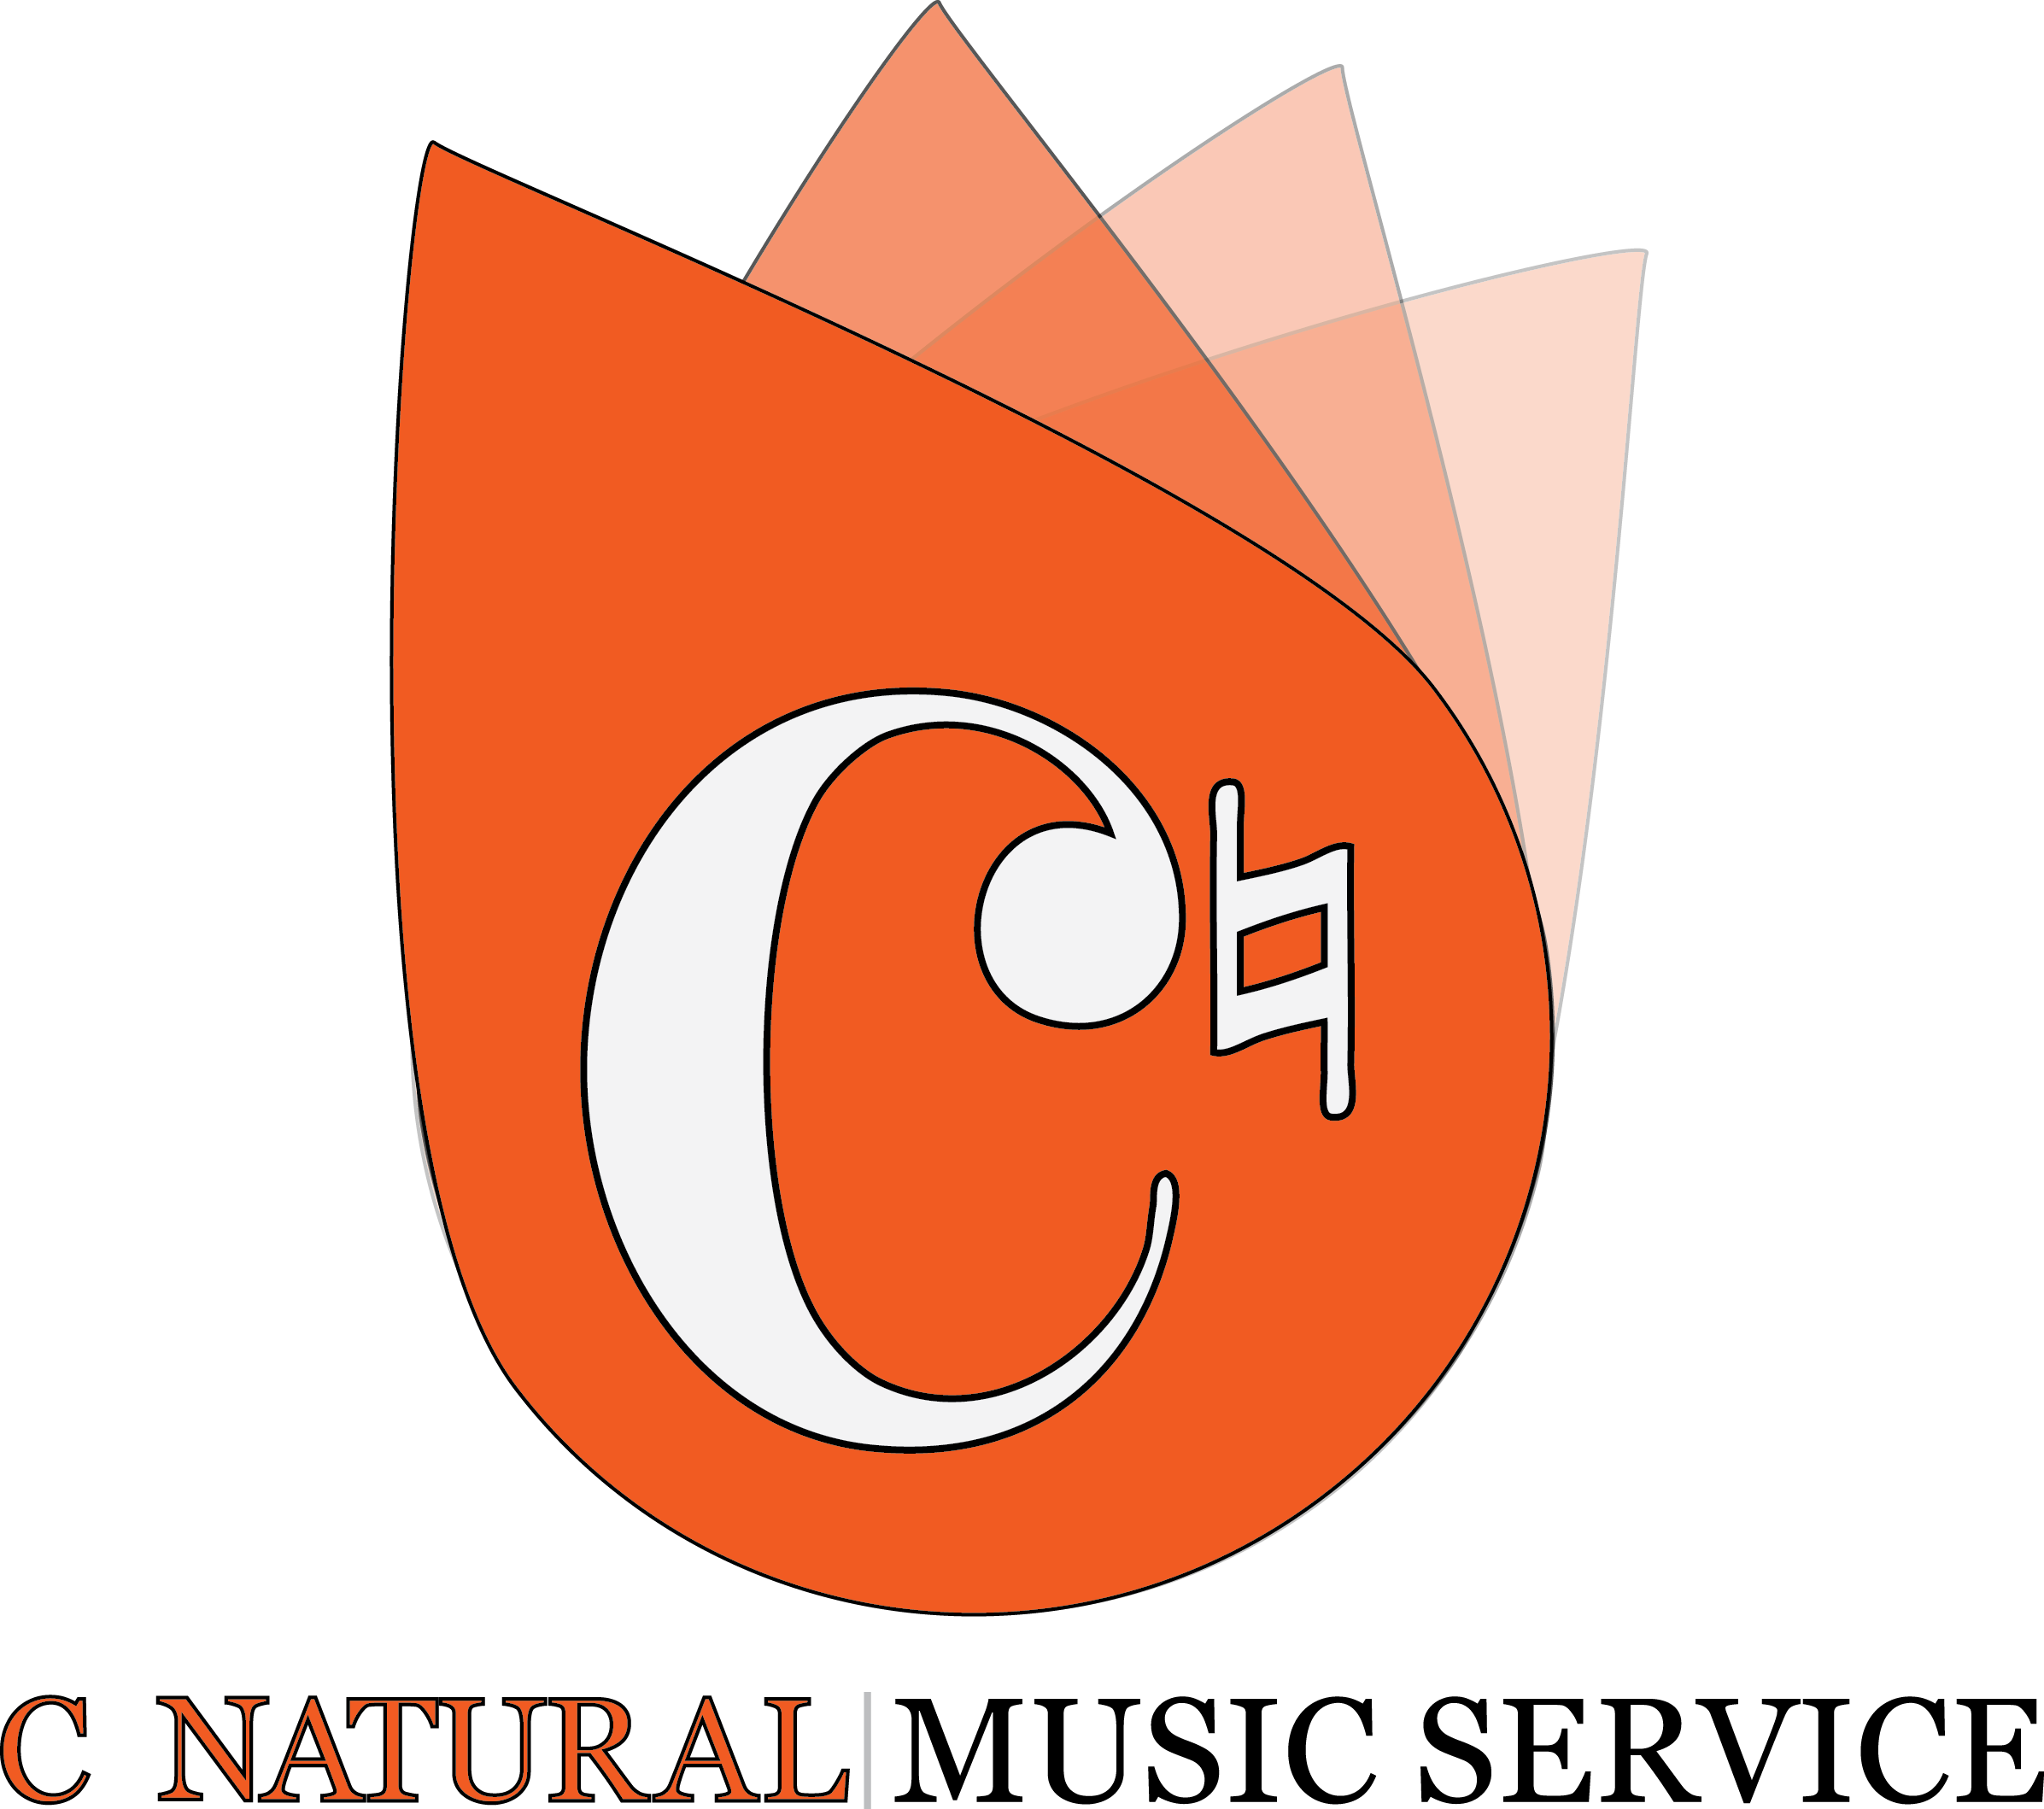 C Natural Music Cnaturalmusic Twitter